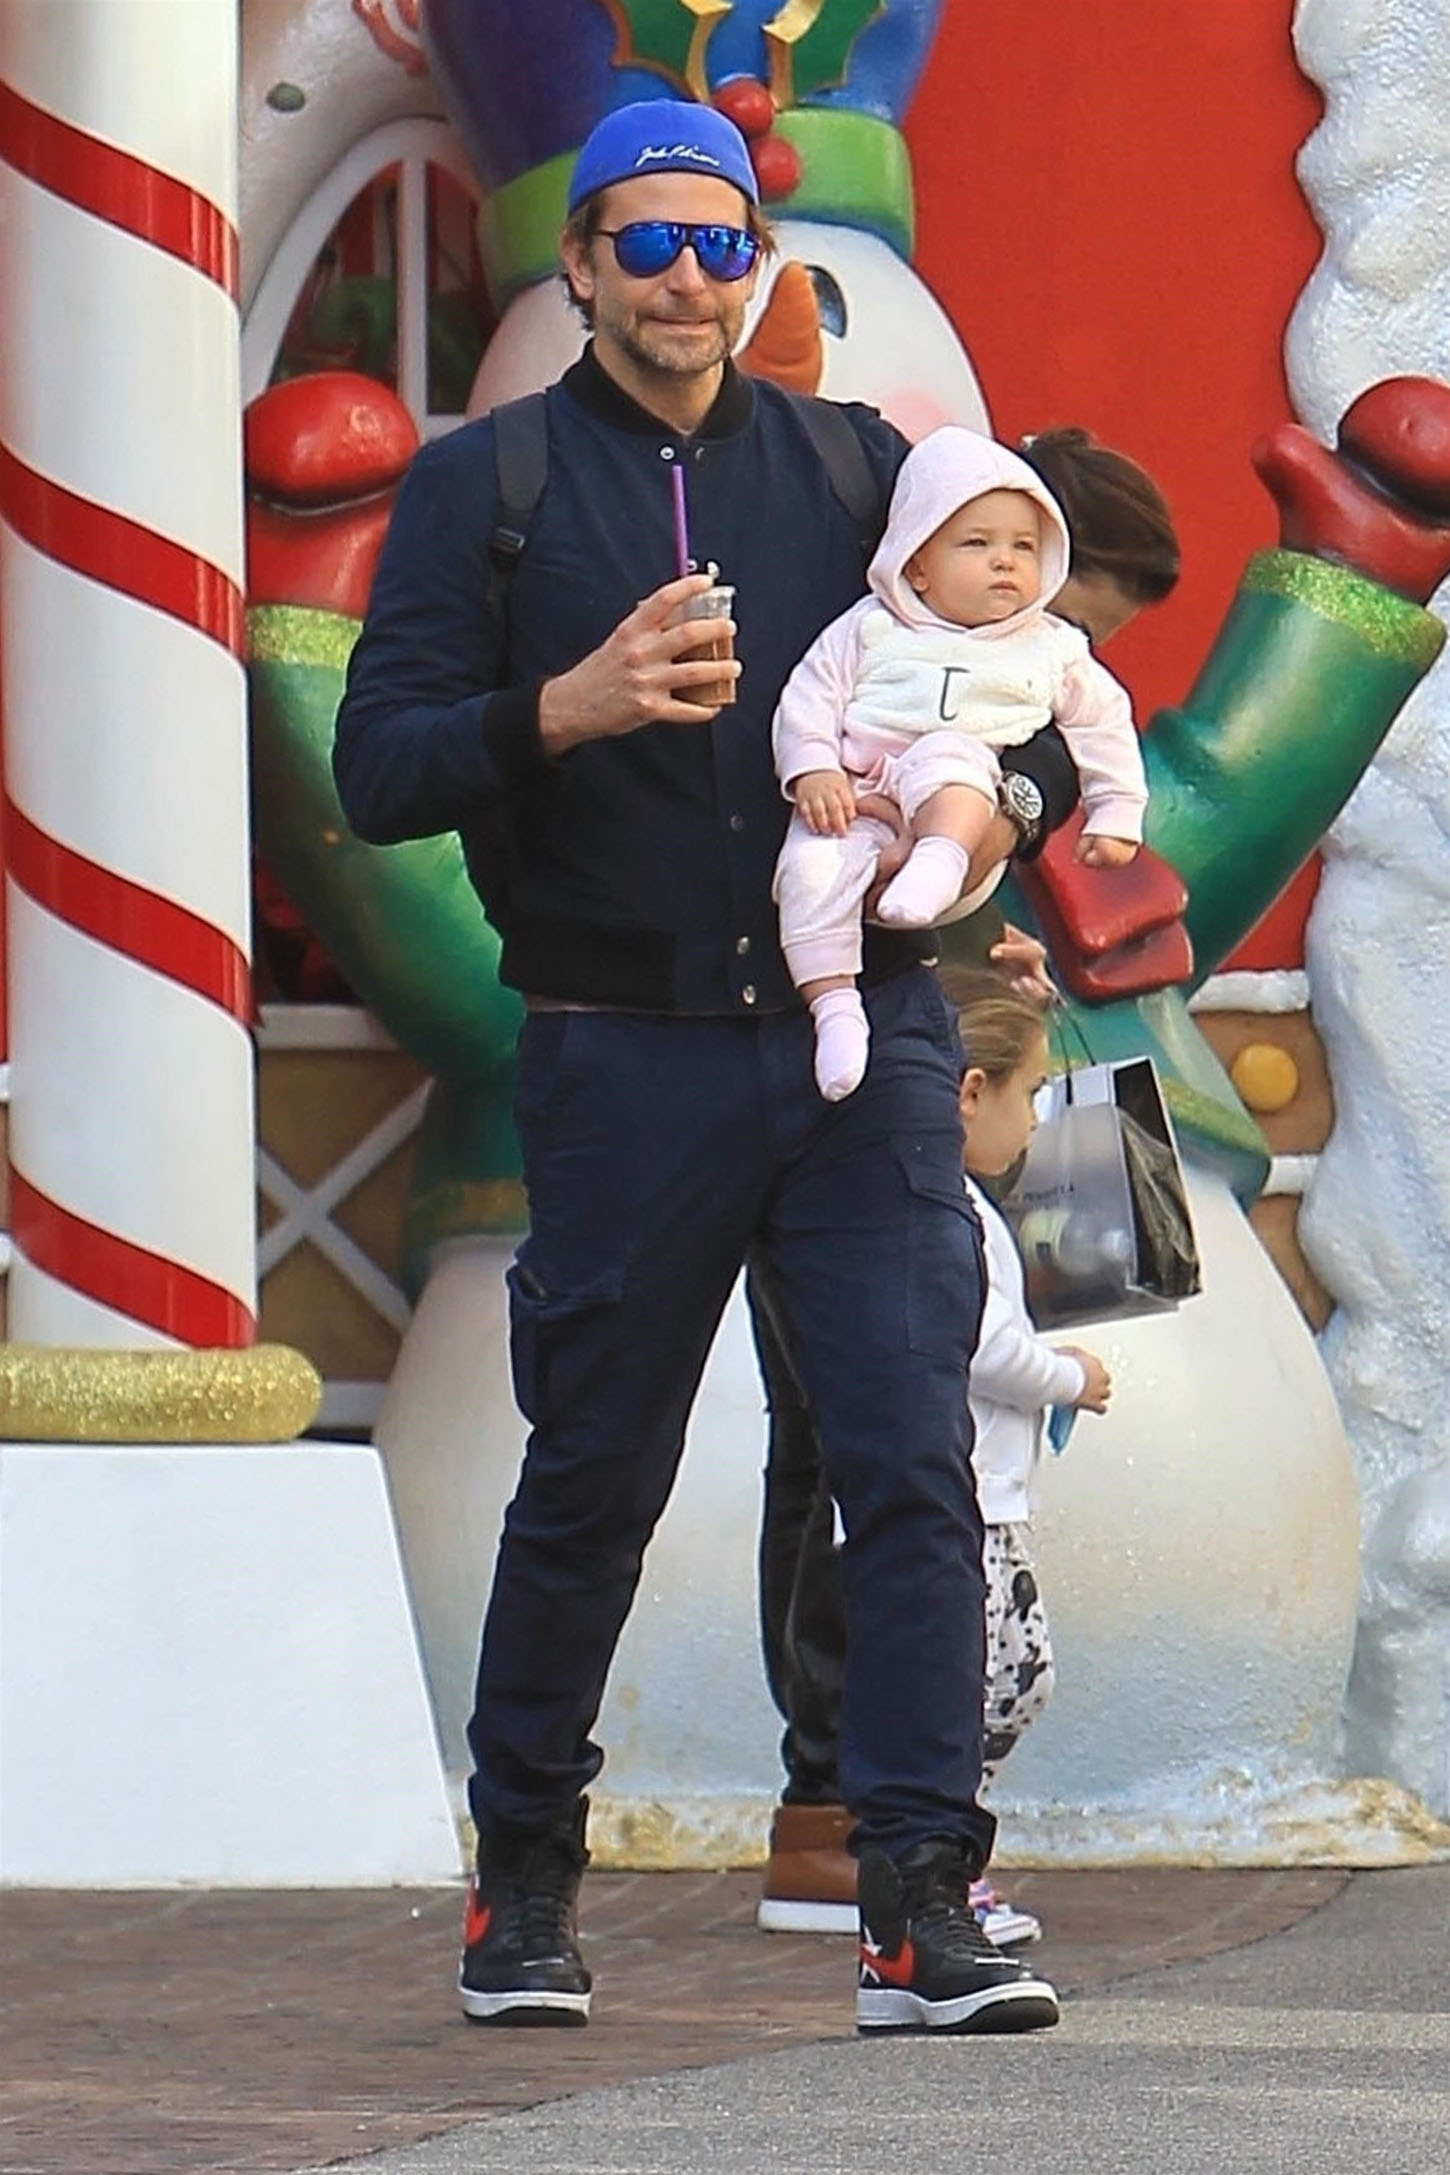 Los Angeles, CA  - *EXCLUSIVE*  **WEB MUST CALL FOR PRICING** - Couple Bradley Cooper and Irina Shayk take their daughter Lea De Seine Shayk Cooper to see Santa Claus at The Grove in Los Angeles. After sitting on Santa's lap Lea enjoyed being carried by her dad so she could see all the Christmas decorations at The Grove.  Pictured: Bradley Cooper, Lea De Seine Shayk Cooper  BACKGRID USA 18 NOVEMBER 2017, Image: 355664072, License: Rights-managed, Restrictions: , Model Release: no, Credit line: Profimedia, AKM-GSI